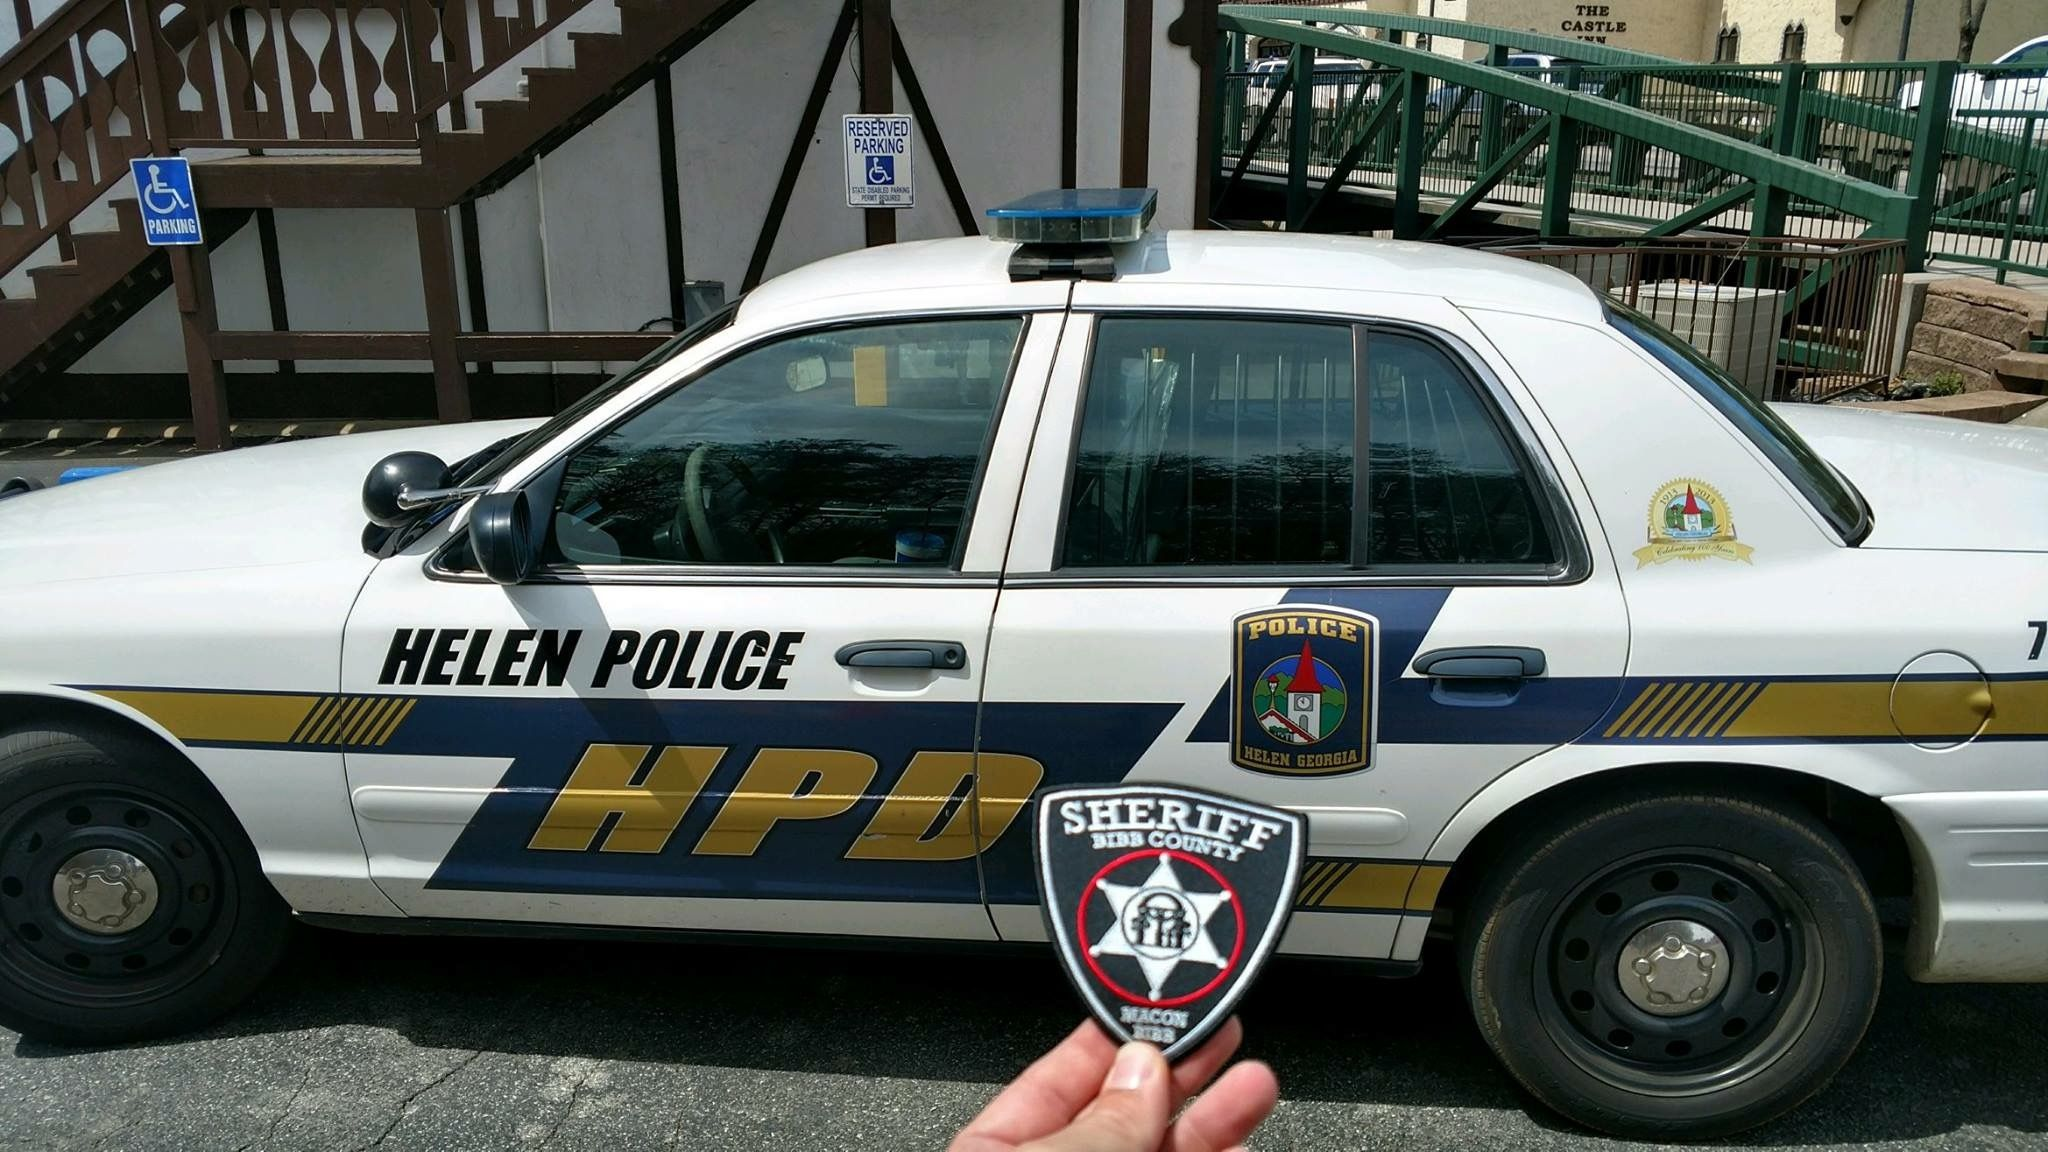 Our Bibb County Sheriff S Office Patch Made It To The Tiny Town Of Helen Built Along The Chattahoochee River T Chattahoochee River Bibb County Chattahoochee